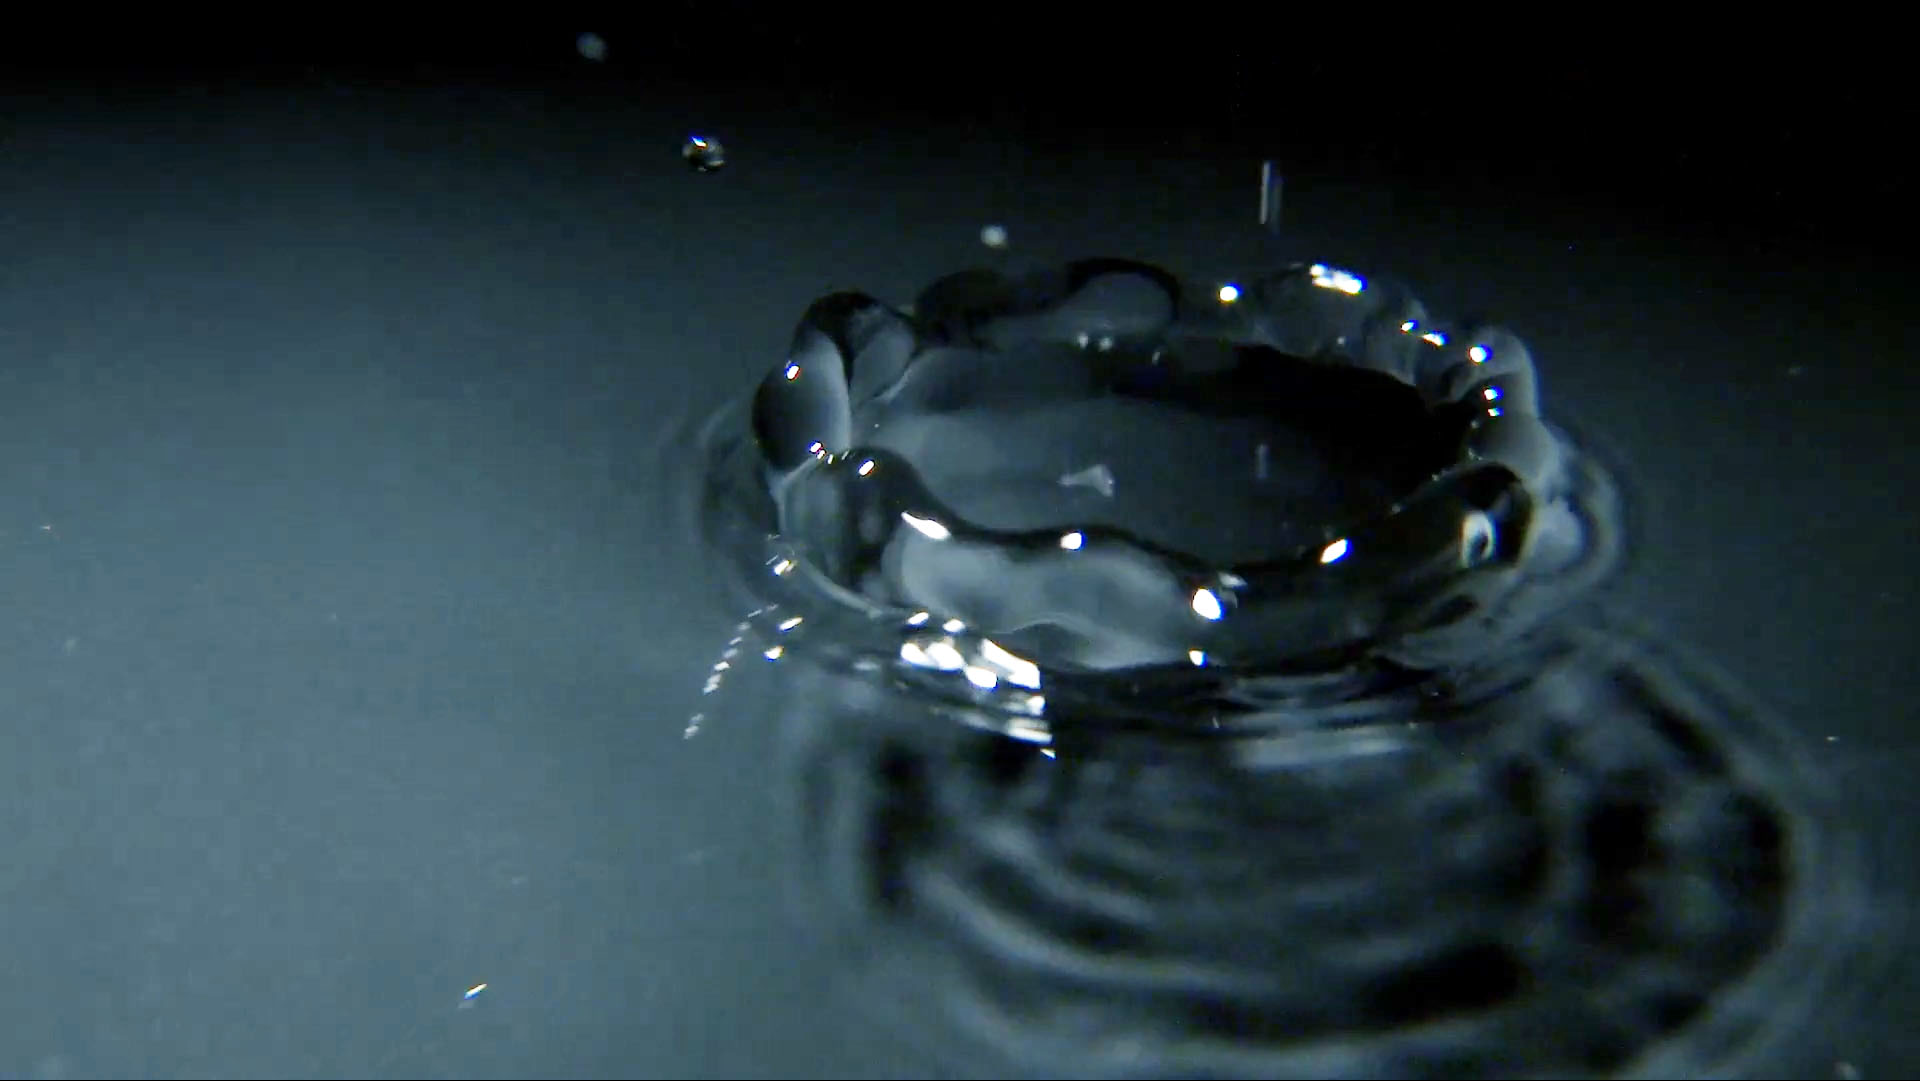 Macro photograph of a drop of water as it falls into a pool. Steel grey tones suggest a modernistic or industrial theme.